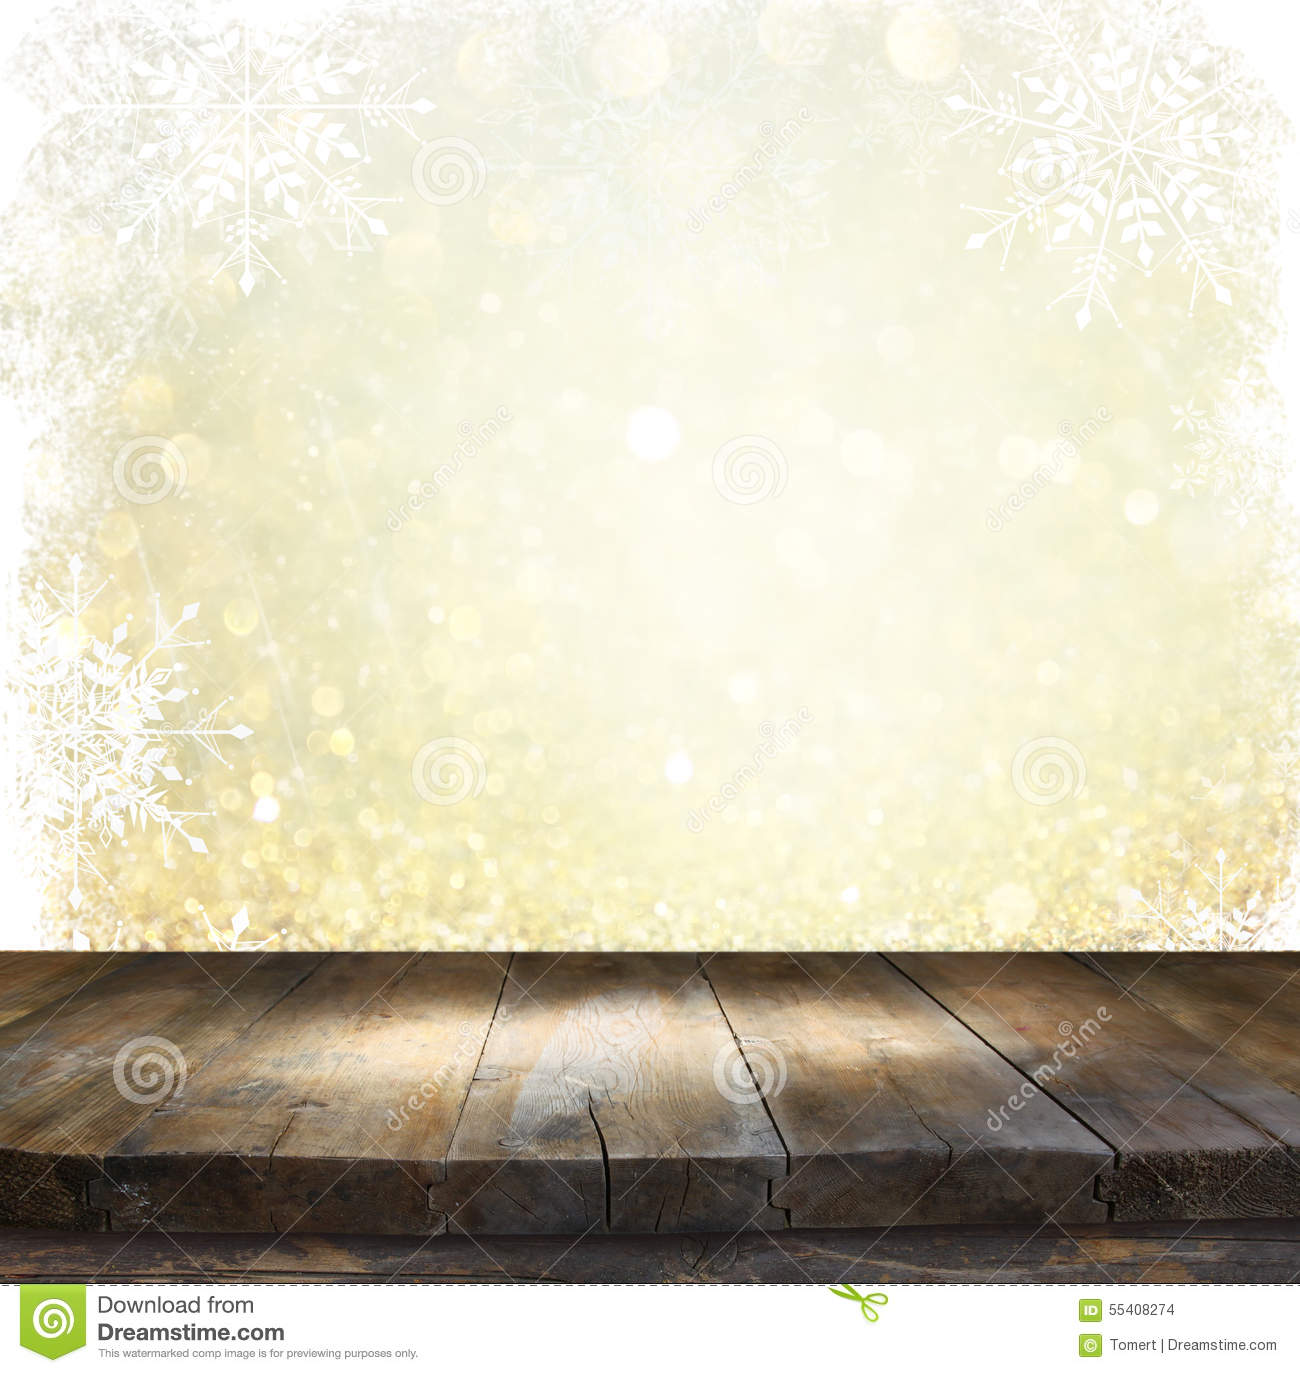 rustic wood table in front of glitter silver and gold bright bokeh lights with snowflacke overlay